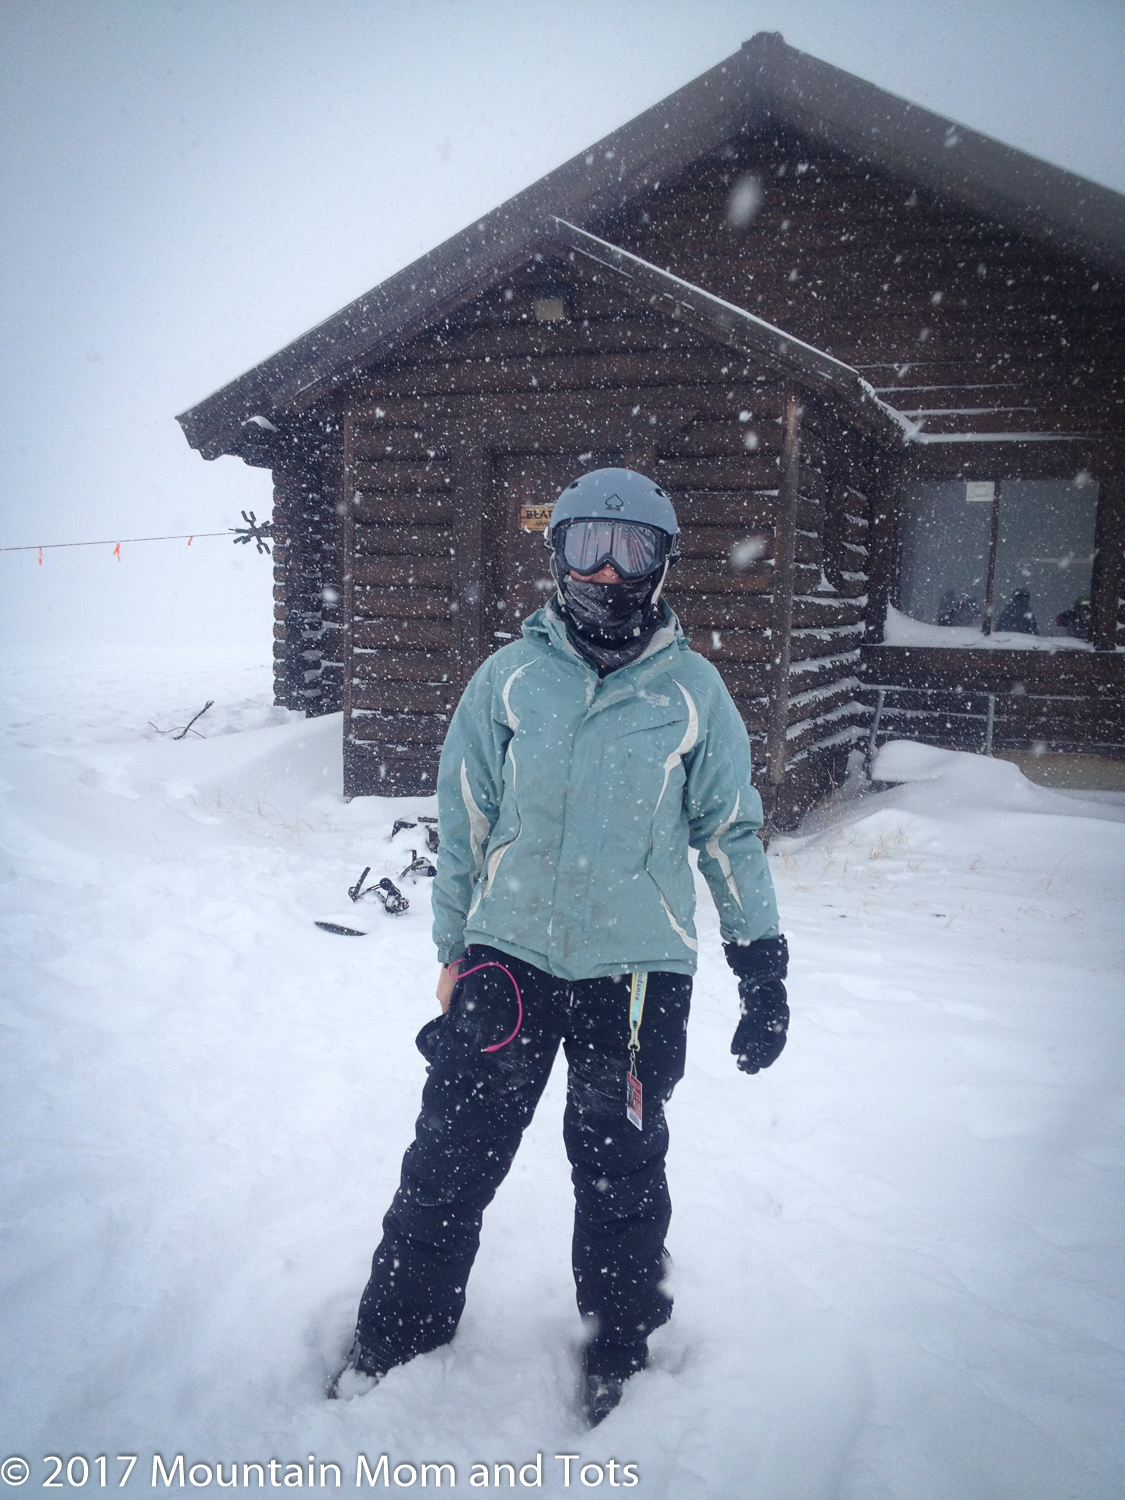 Snow falling at Bearclaw Cabin